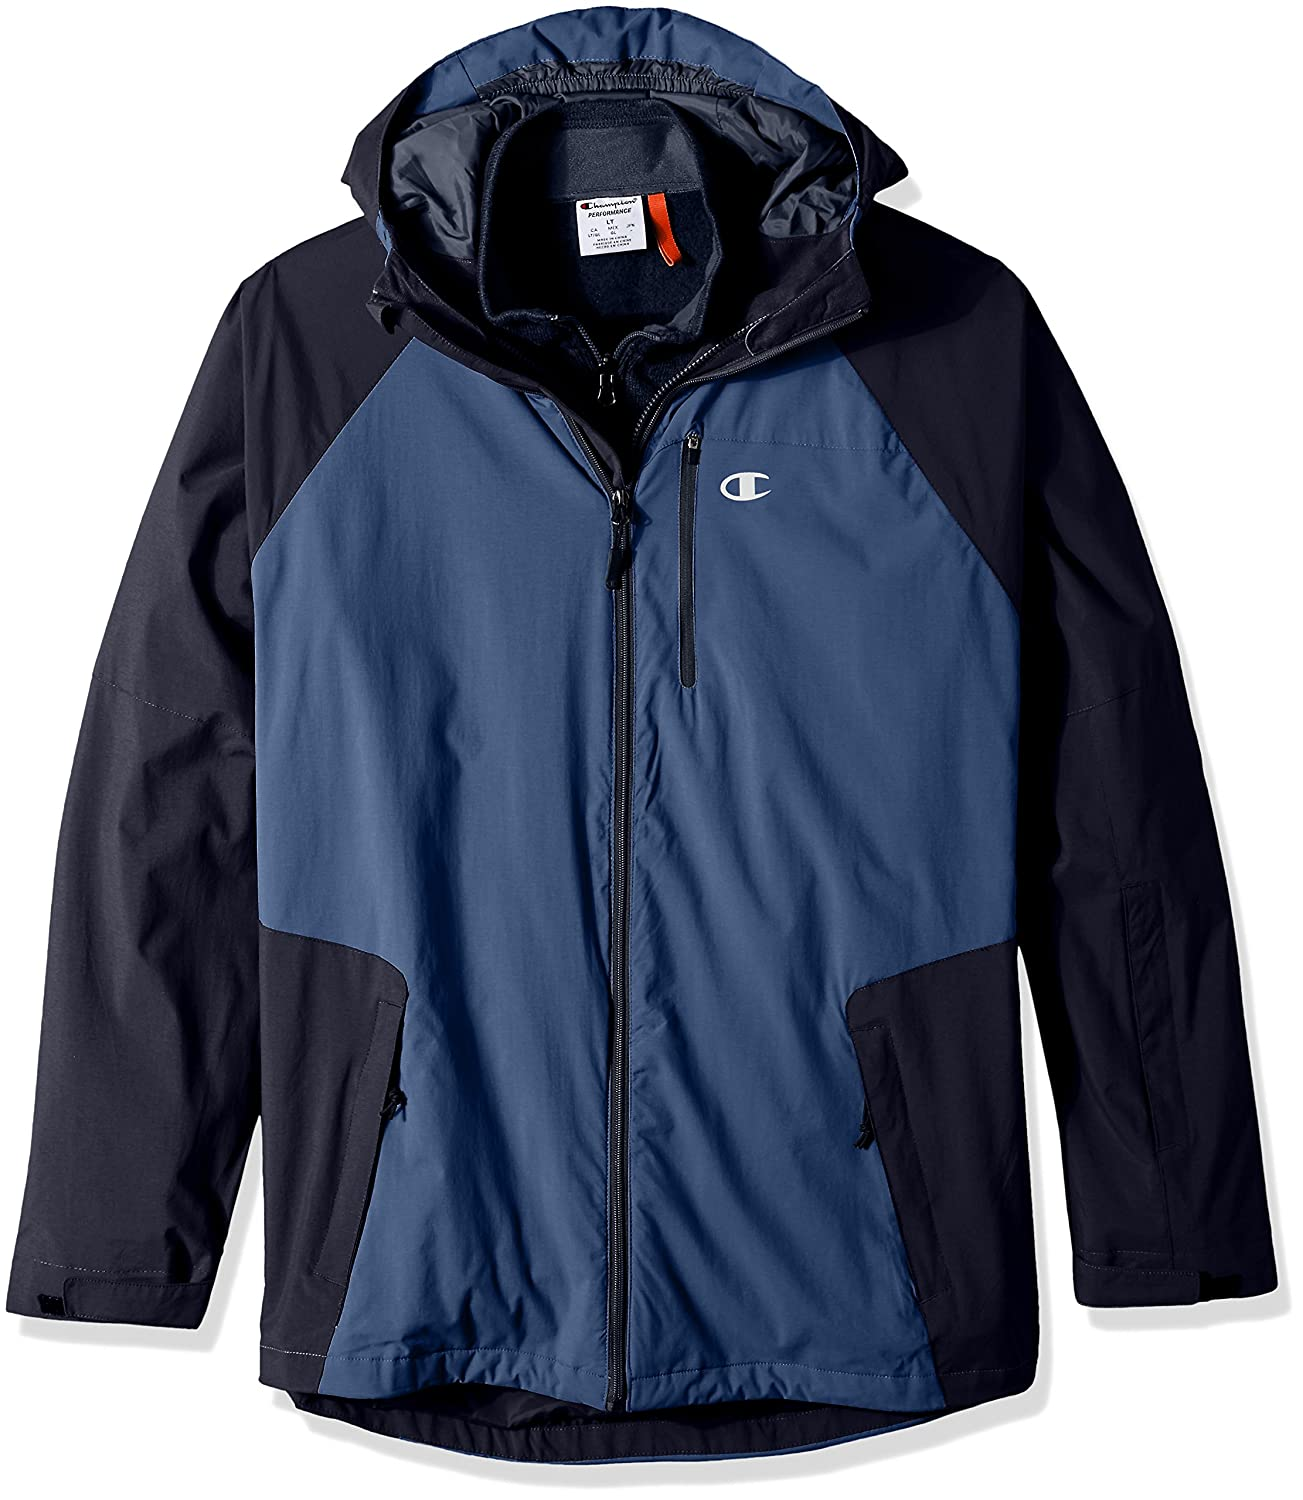 Champion Men's Tall Size Technical Ripstop 3-in-1 System with Sweater Fleece Inner Shell Jacket Concrete X-Large Champion Mens Outerwear CH4003PSWT